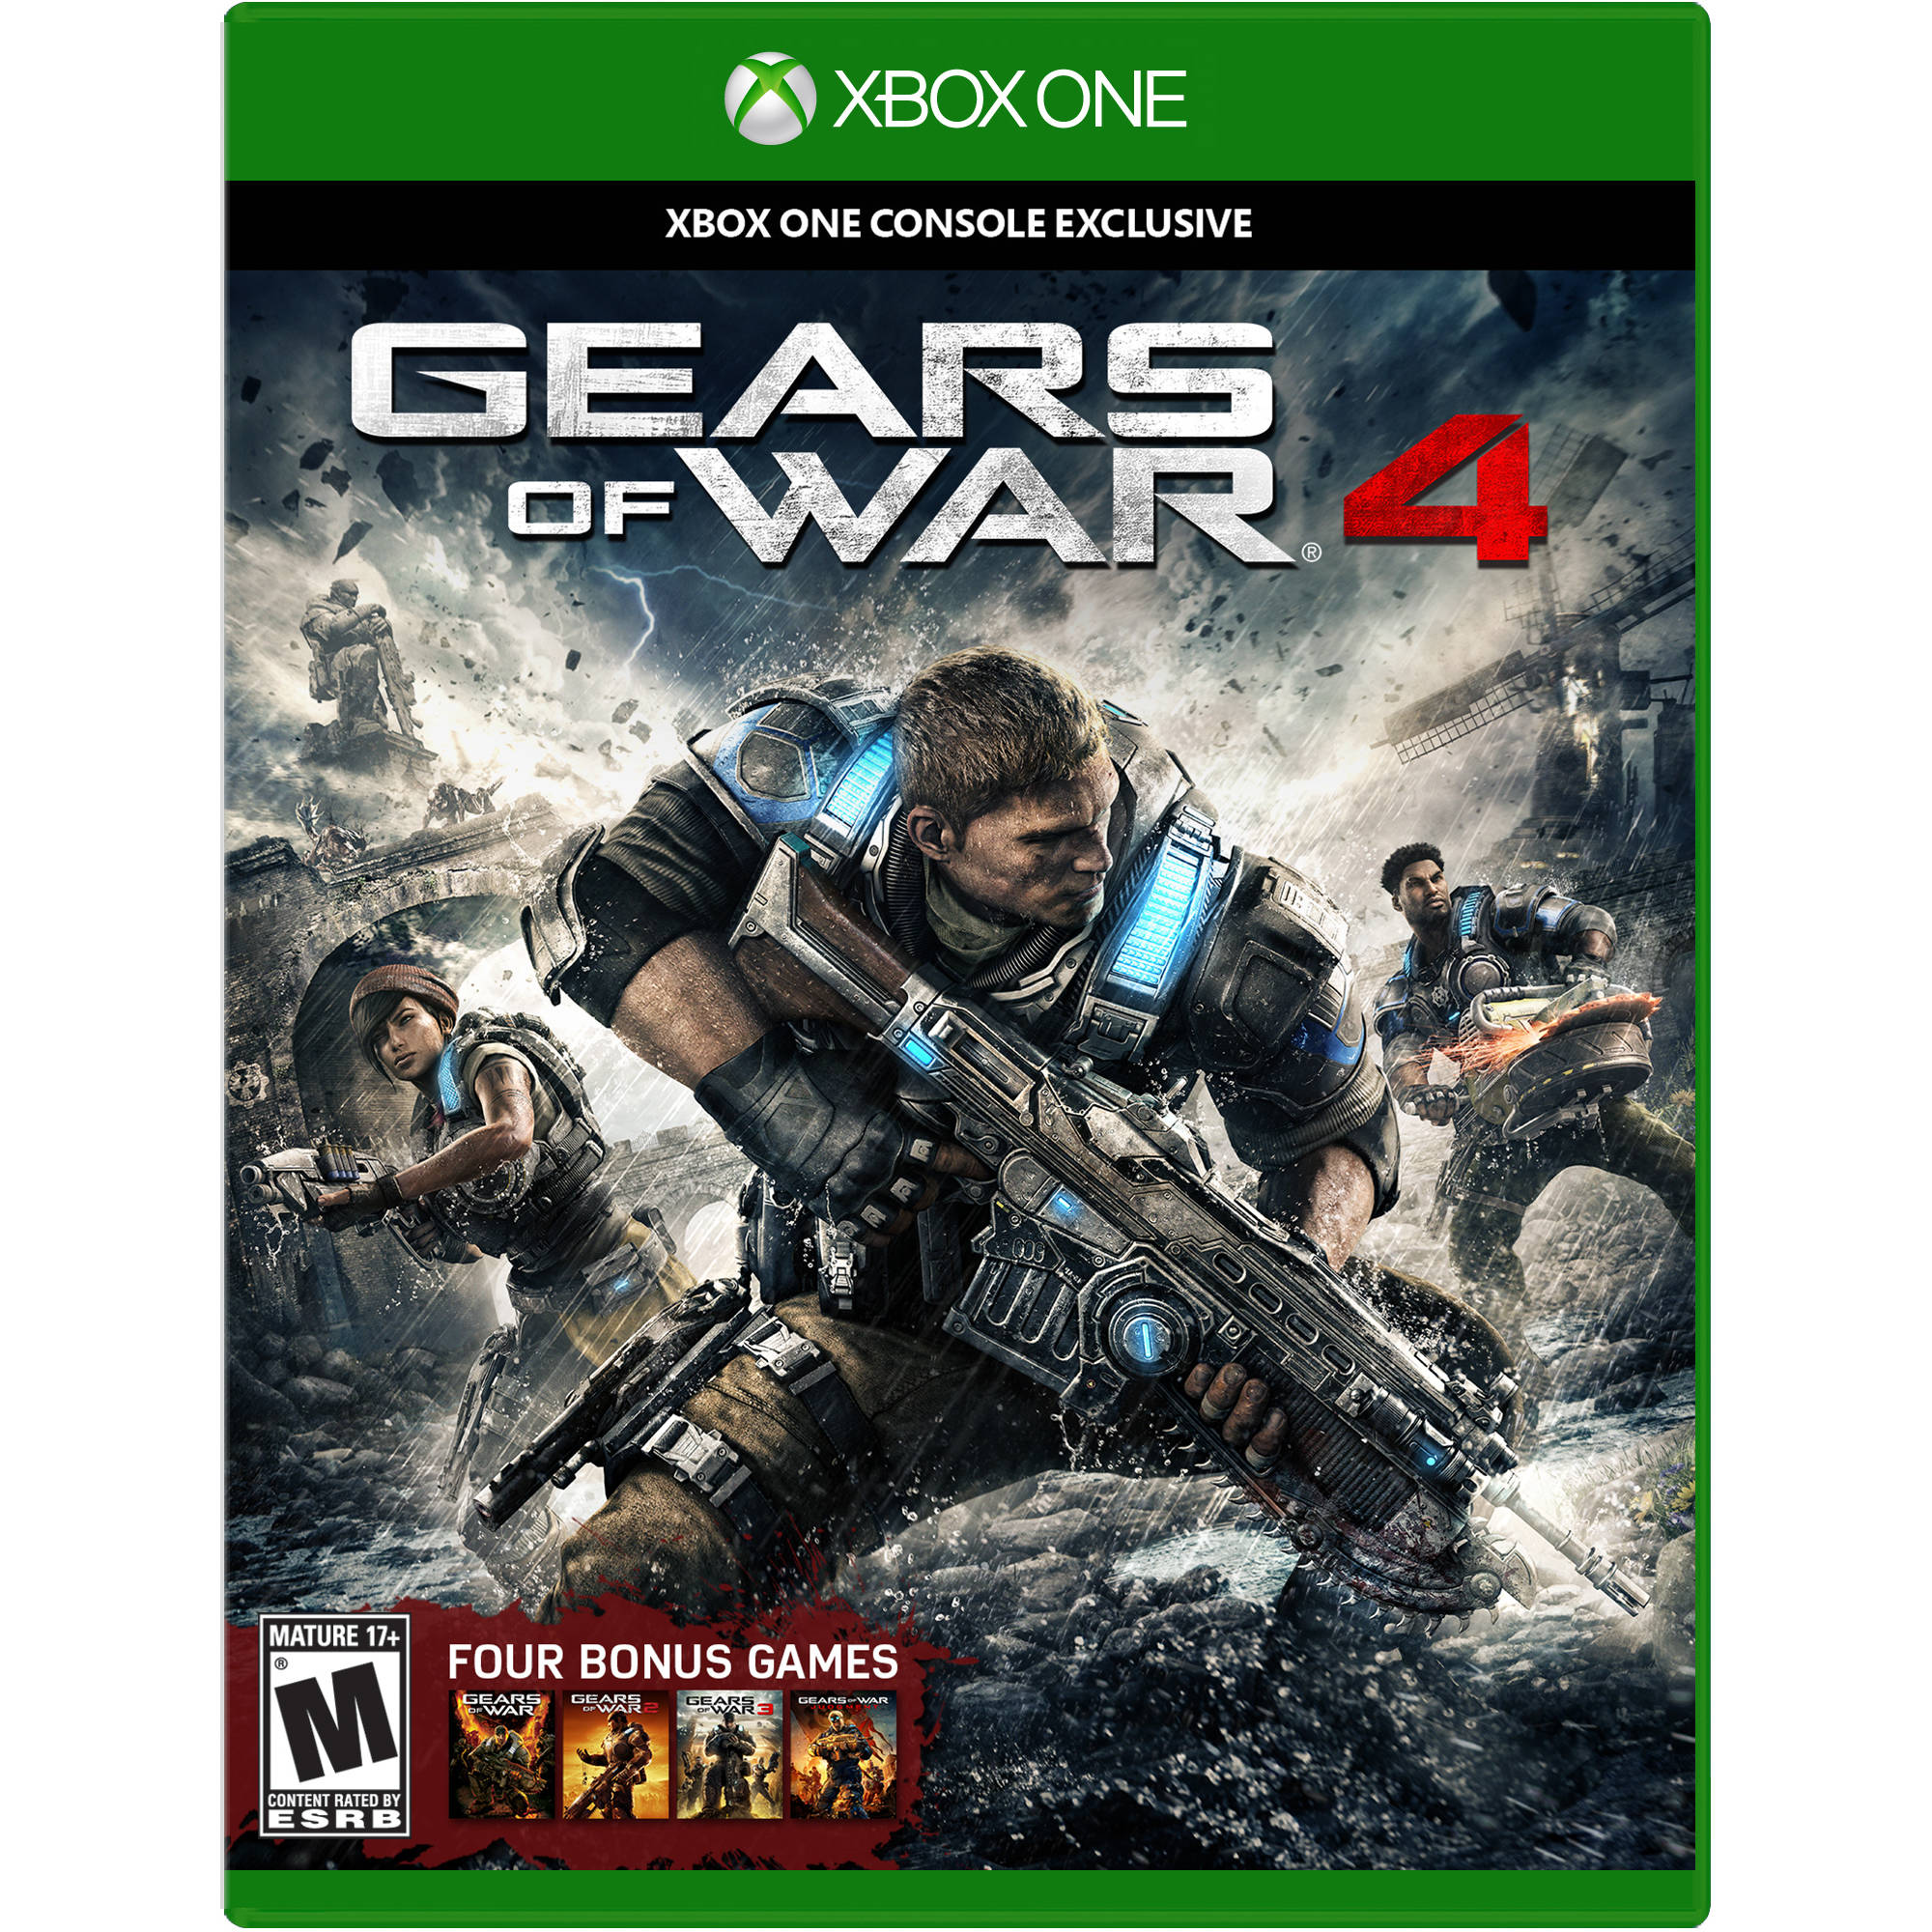 Gears of War 4 Xbox One English US Wal-Mart Blu-ray IPQ